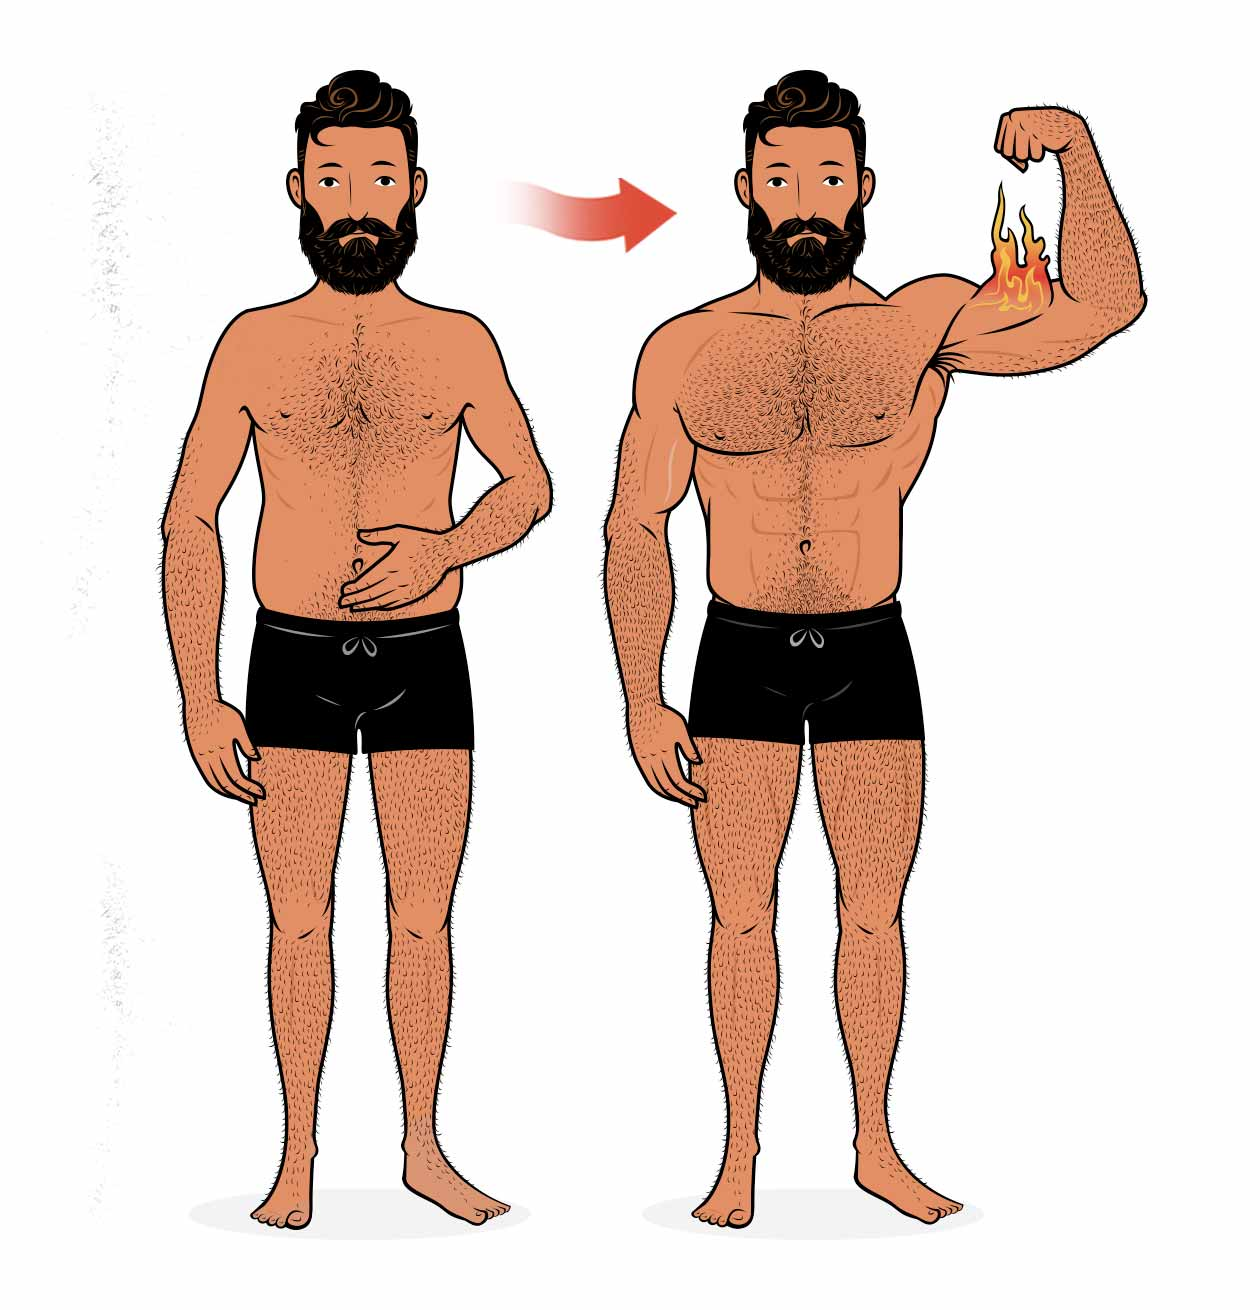 Outlift illustration showing a man building muscle.